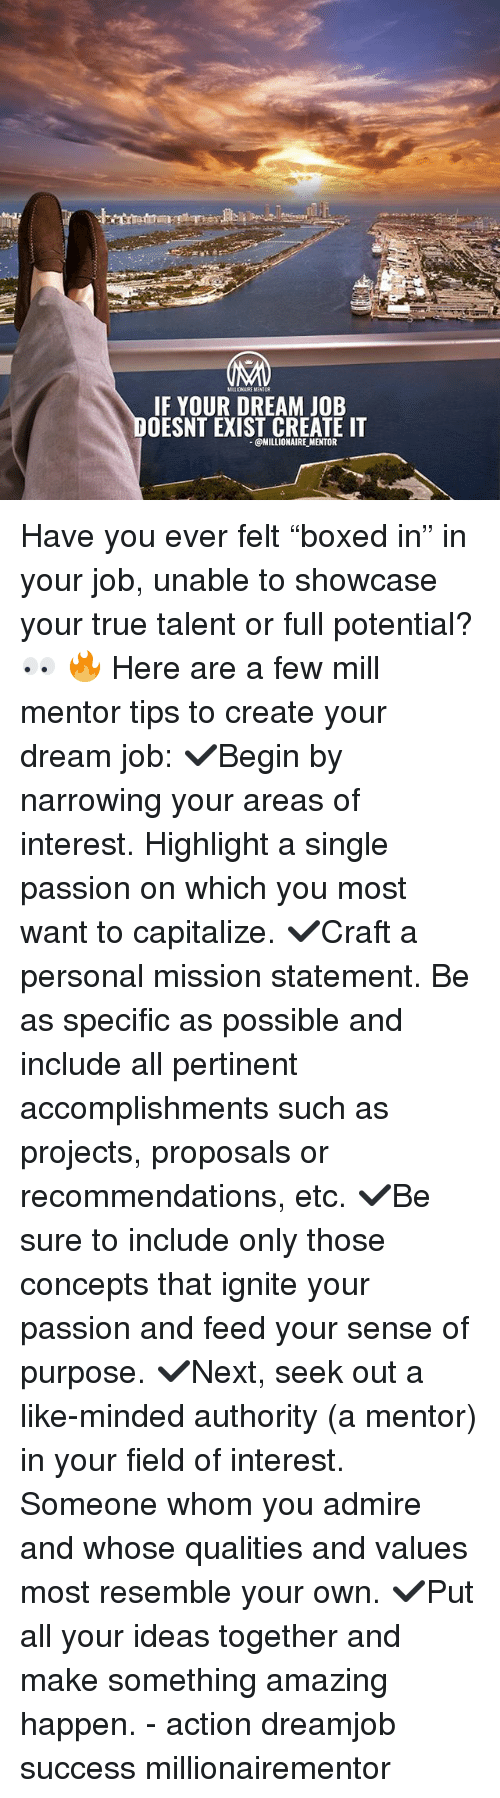 "Memes, True, and Amazing: MILLIONAIRE MENTOR  IF YOUR DREAM JOB  OESNT EXIST CREATE IT  @MILLIONAIRE MENTOR Have you ever felt ""boxed in"" in your job, unable to showcase your true talent or full potential? 👀 🔥 Here are a few mill mentor tips to create your dream job: ✔️Begin by narrowing your areas of interest. Highlight a single passion on which you most want to capitalize. ✔️Craft a personal mission statement. Be as specific as possible and include all pertinent accomplishments such as projects, proposals or recommendations, etc. ✔️Be sure to include only those concepts that ignite your passion and feed your sense of purpose. ✔️Next, seek out a like-minded authority (a mentor) in your field of interest. Someone whom you admire and whose qualities and values most resemble your own. ✔️Put all your ideas together and make something amazing happen. - action dreamjob success millionairementor"